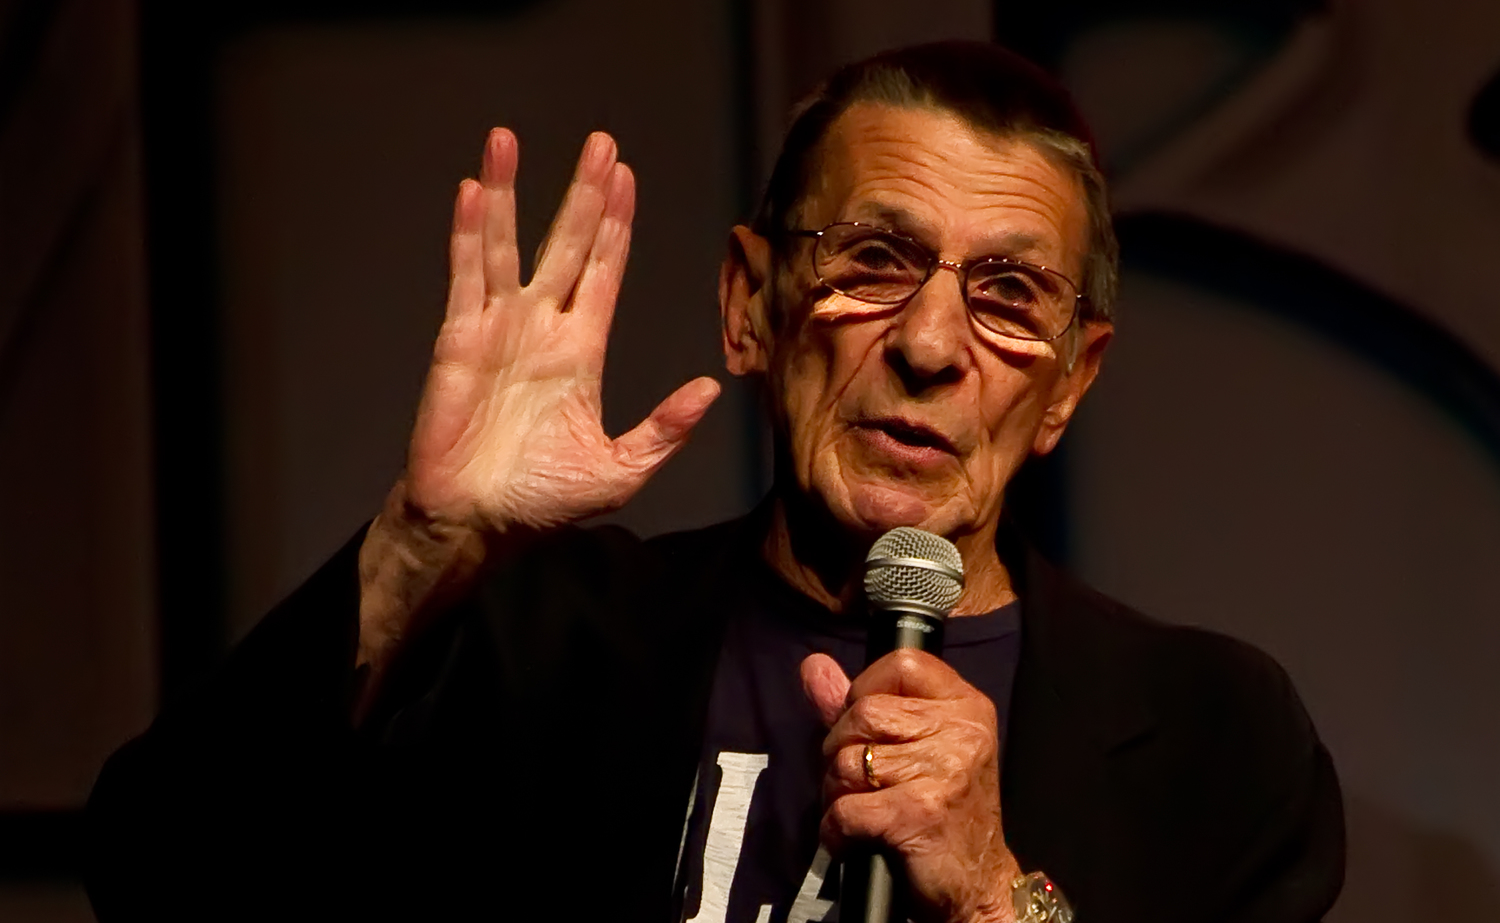 Leonard Nimoy at first resisted being type-cast as Mr. Spock, but he came to realize that he and his iconic role were beloved – and his brand for life.  Photo by Beth Madison, via Wikimedia Commons.